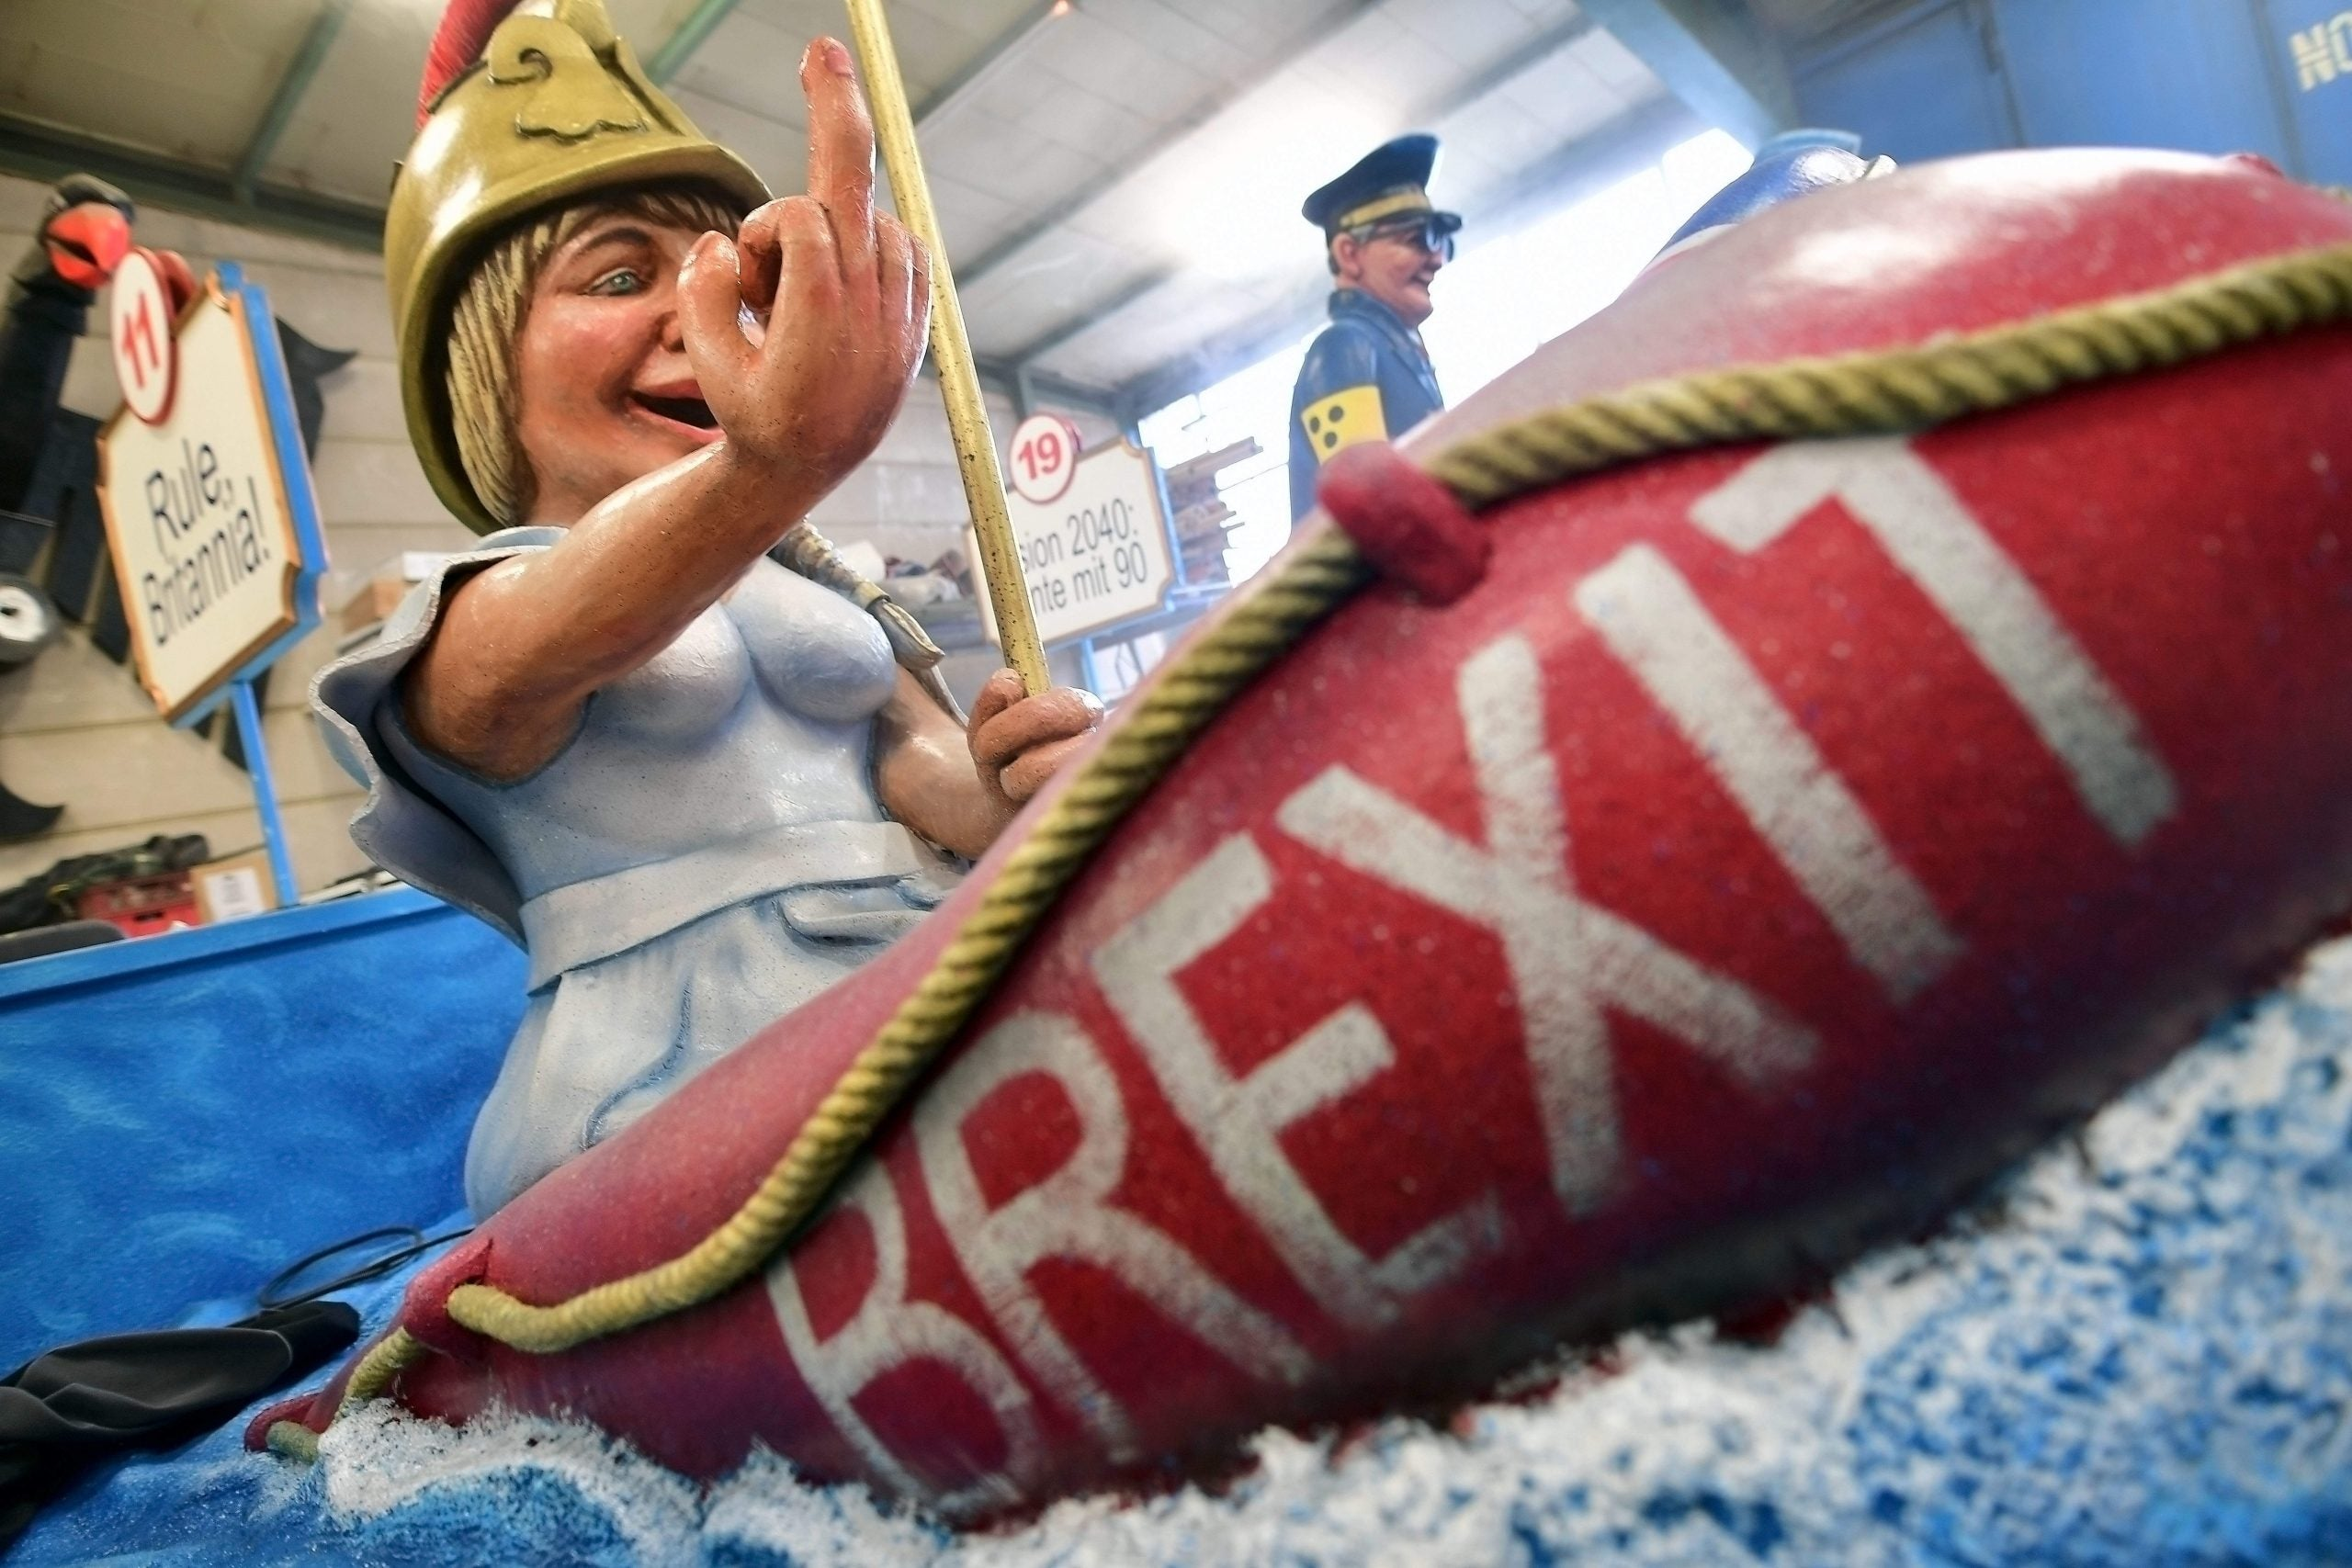 The old British tactic of divide and rule in Europe will not work for Brexit negotiations